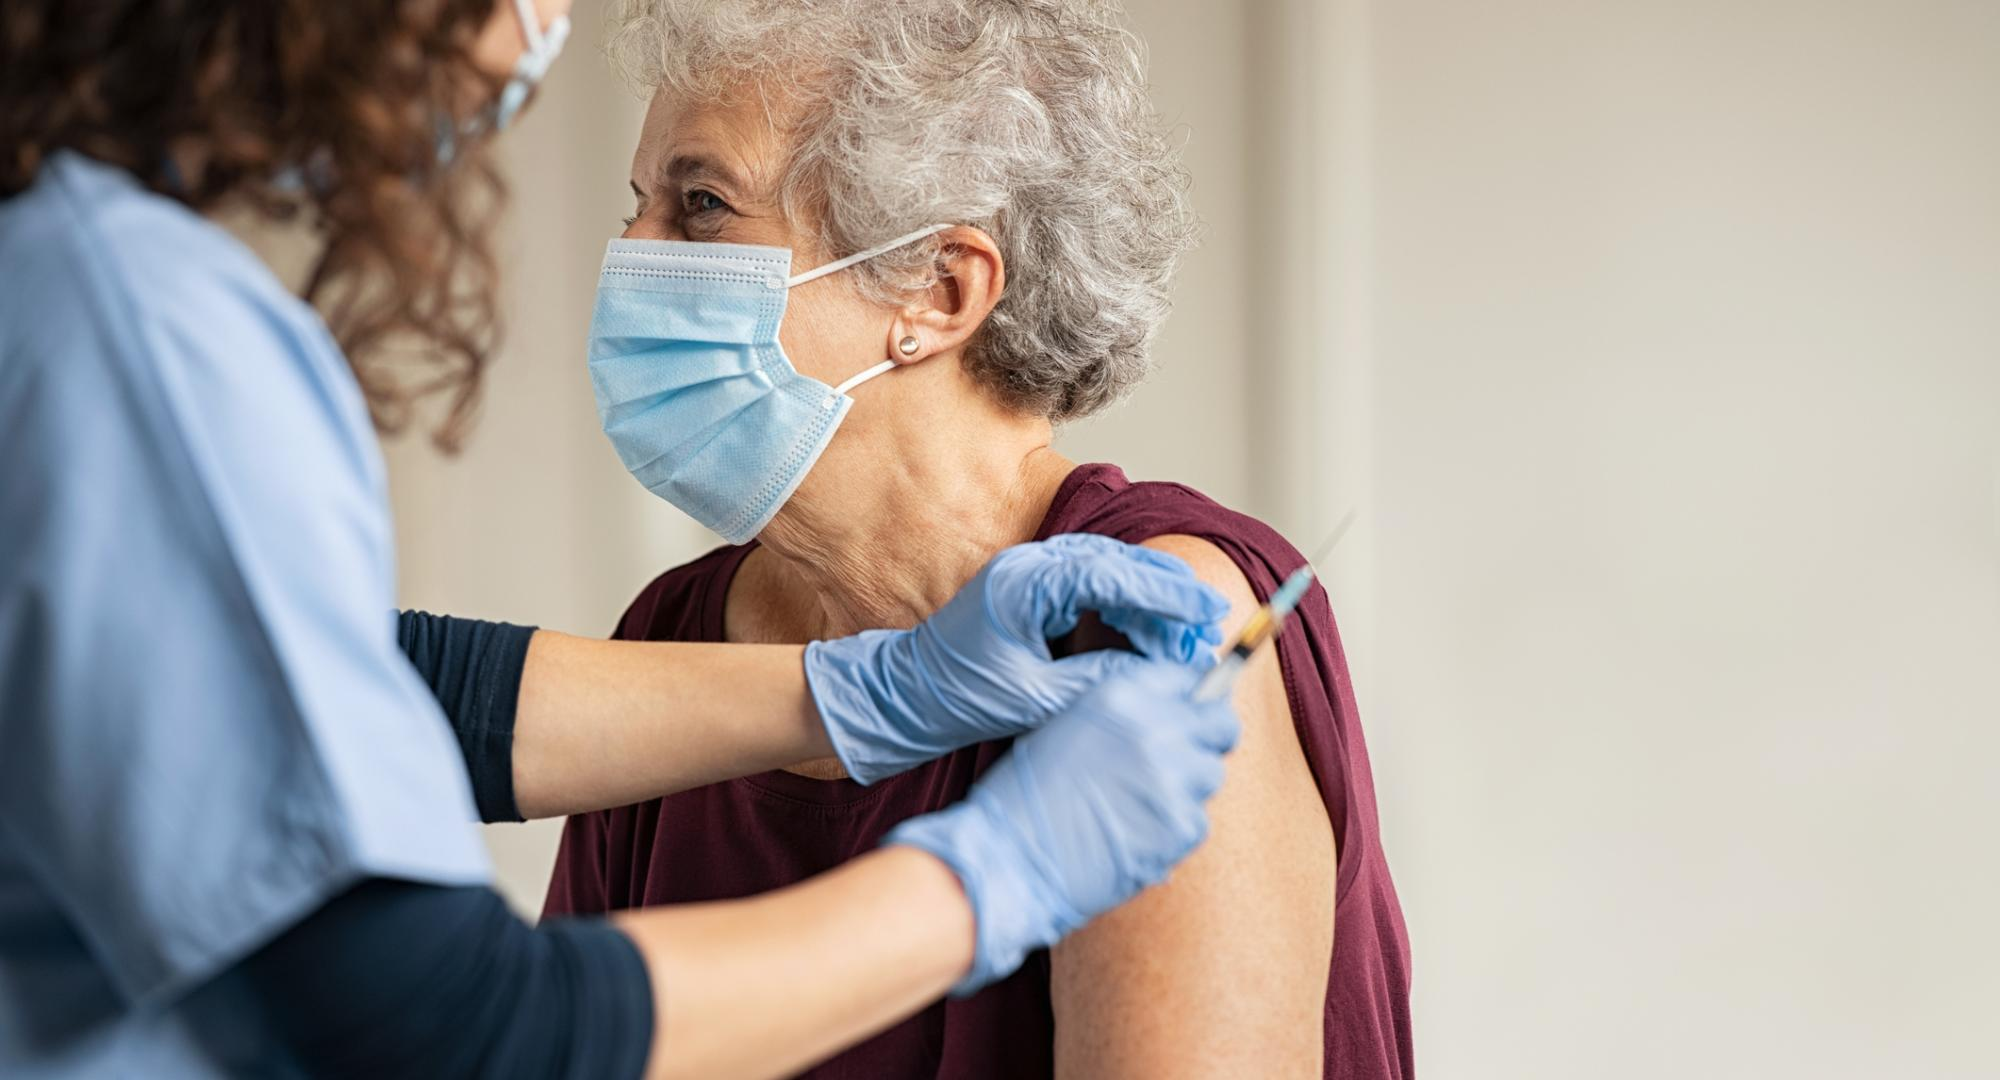 An elderly patient receiving her vaccine jab from a health professional